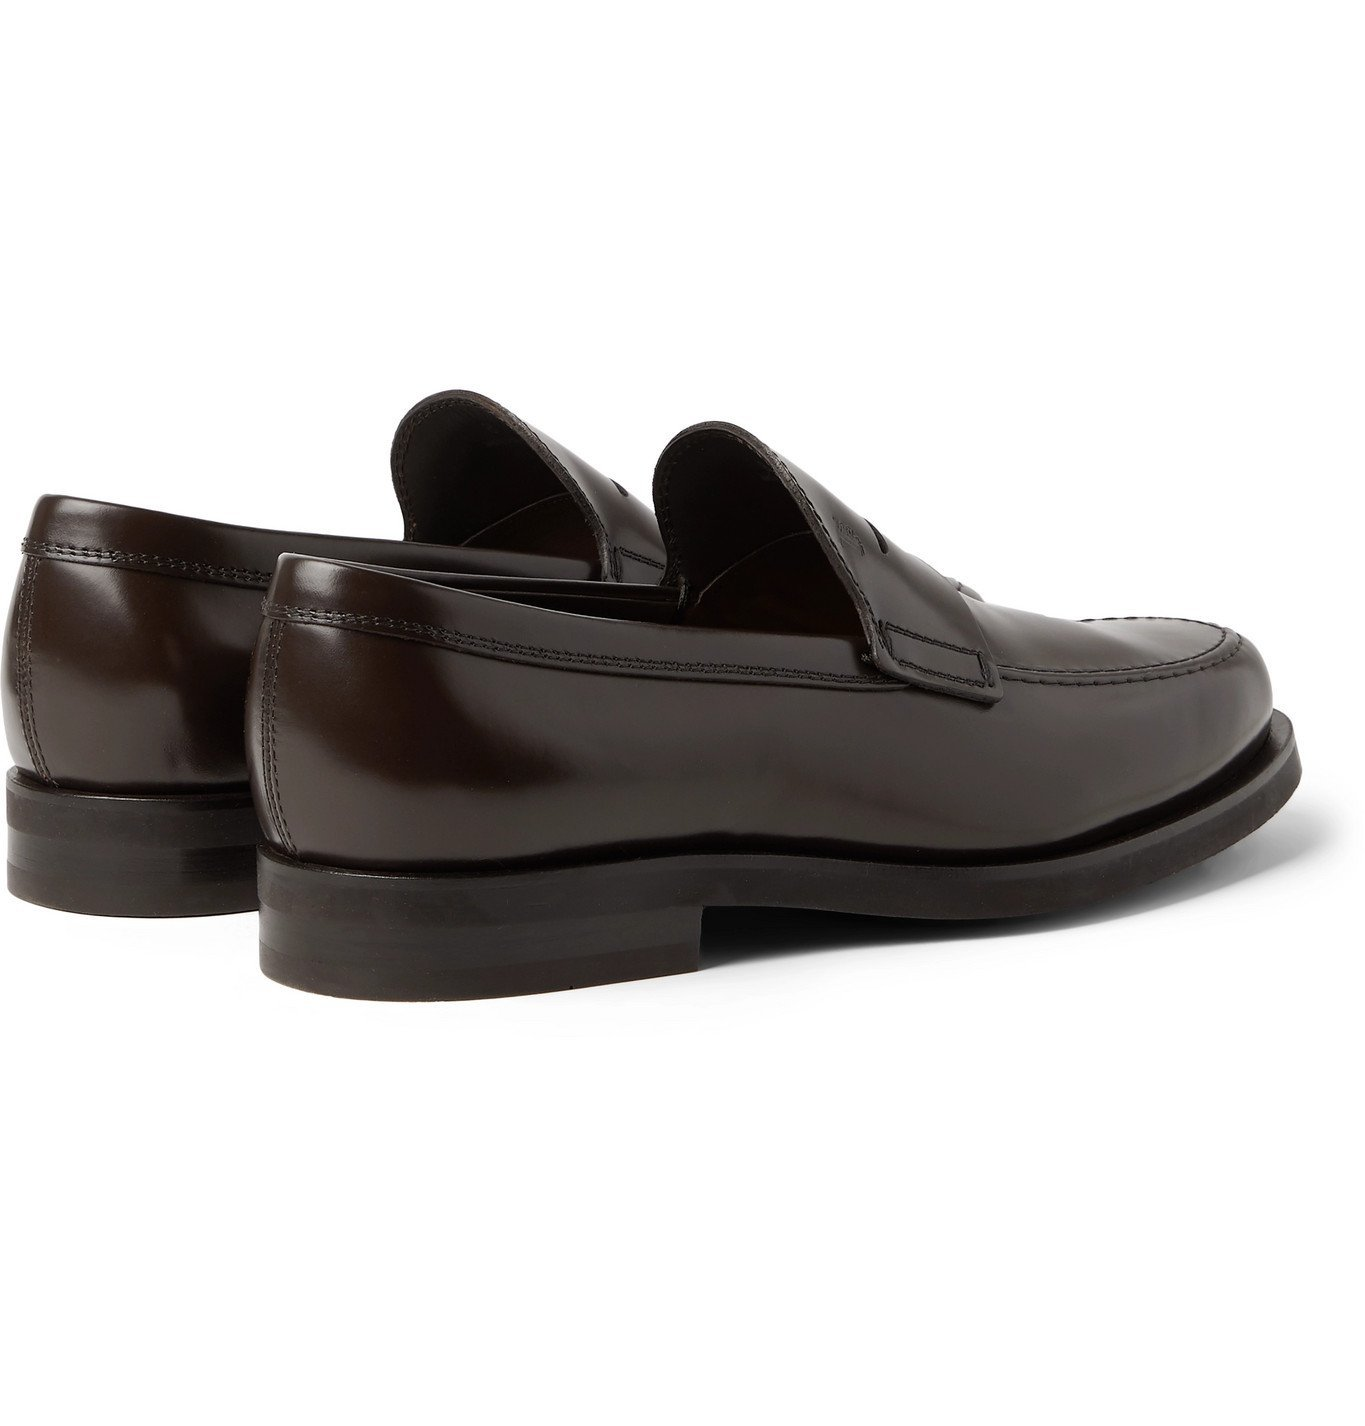 Tod's - Leather Penny Loafers - Brown